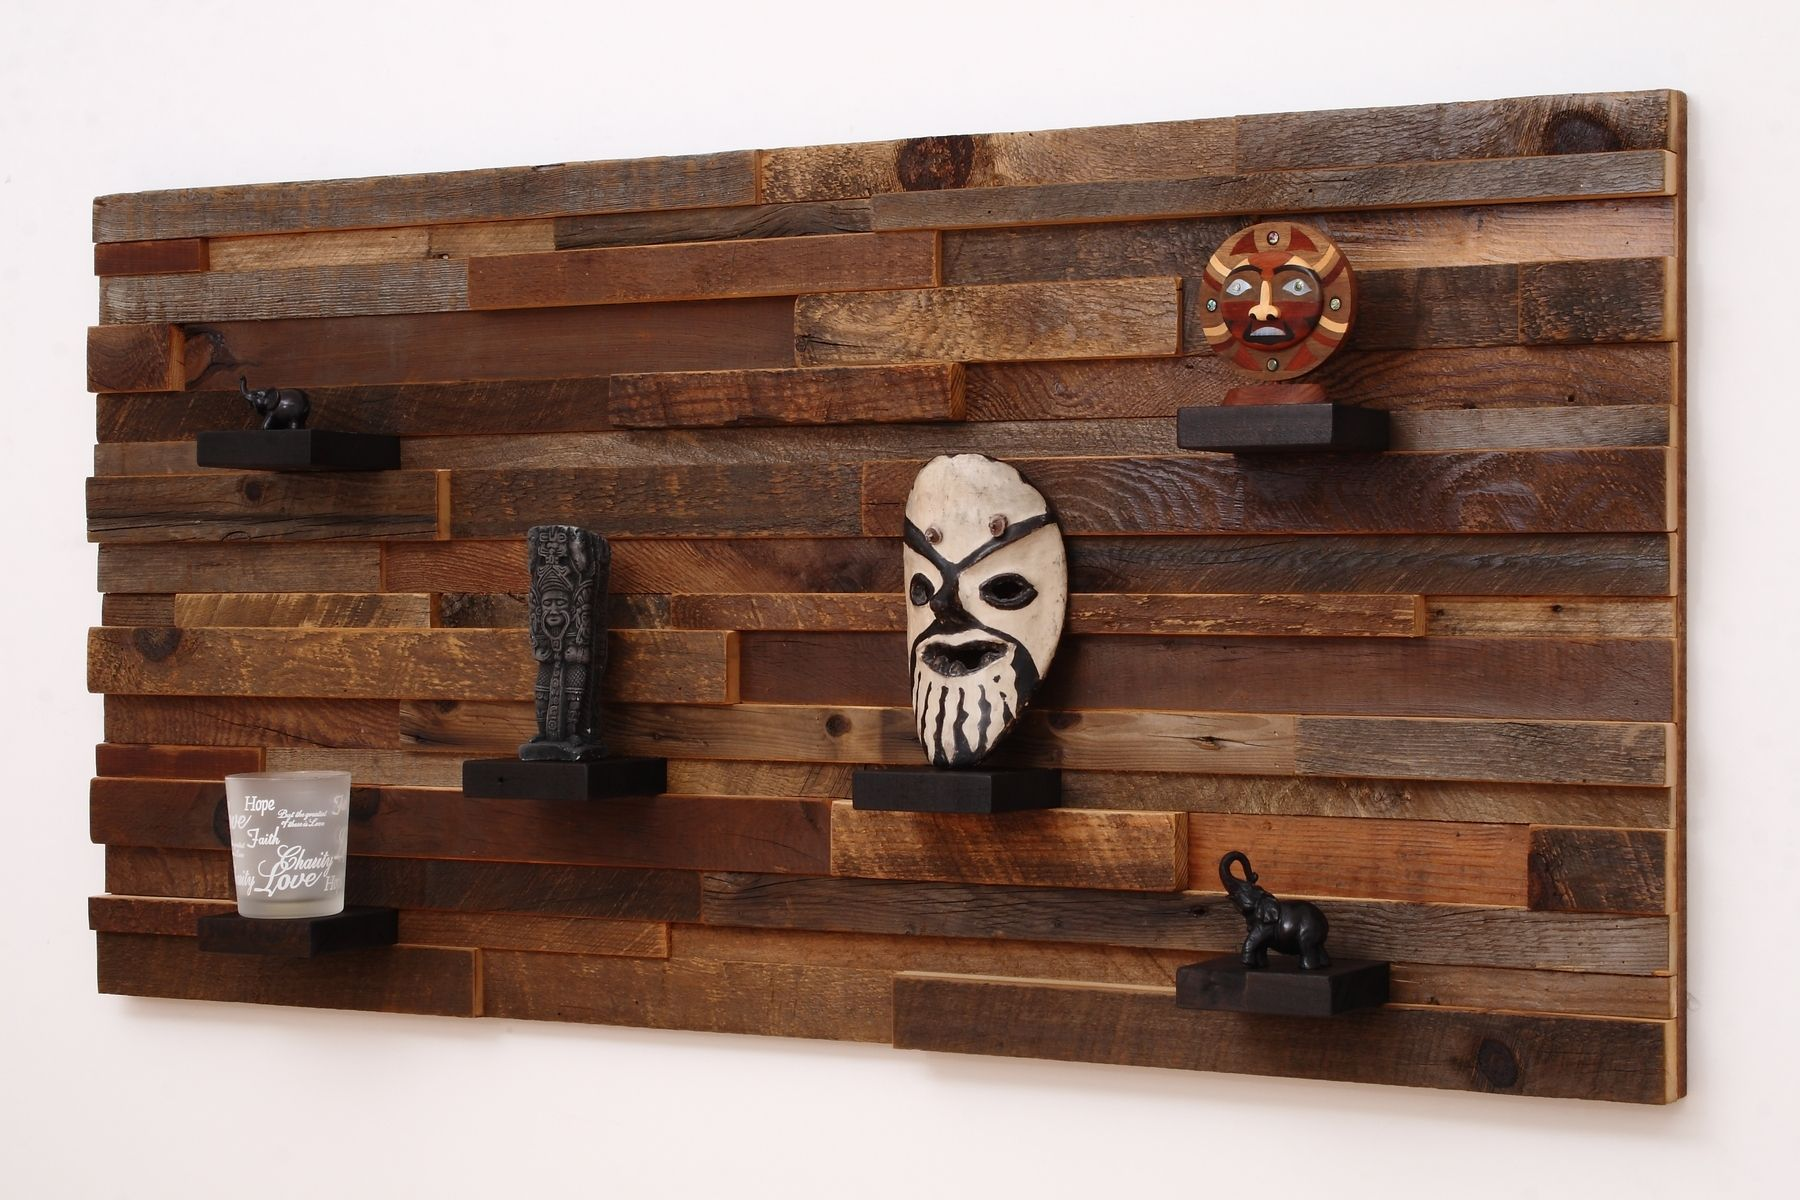 Custom wood wall art with wood shelves 48 x24 x5 made of for Barnwood decor